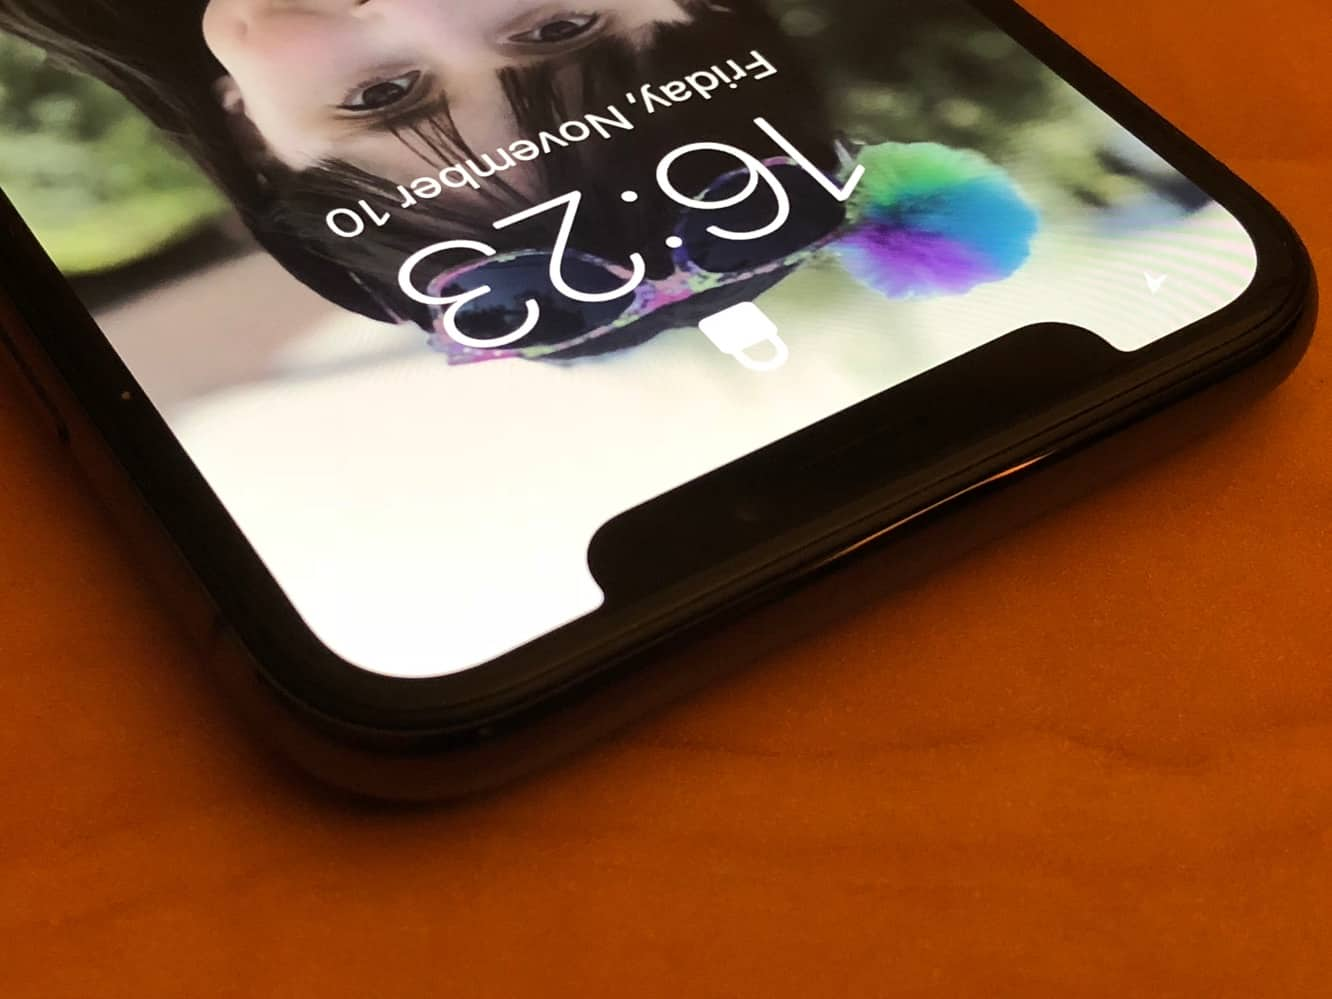 Apple struggling to cut its dependence on Samsung for OLED displays